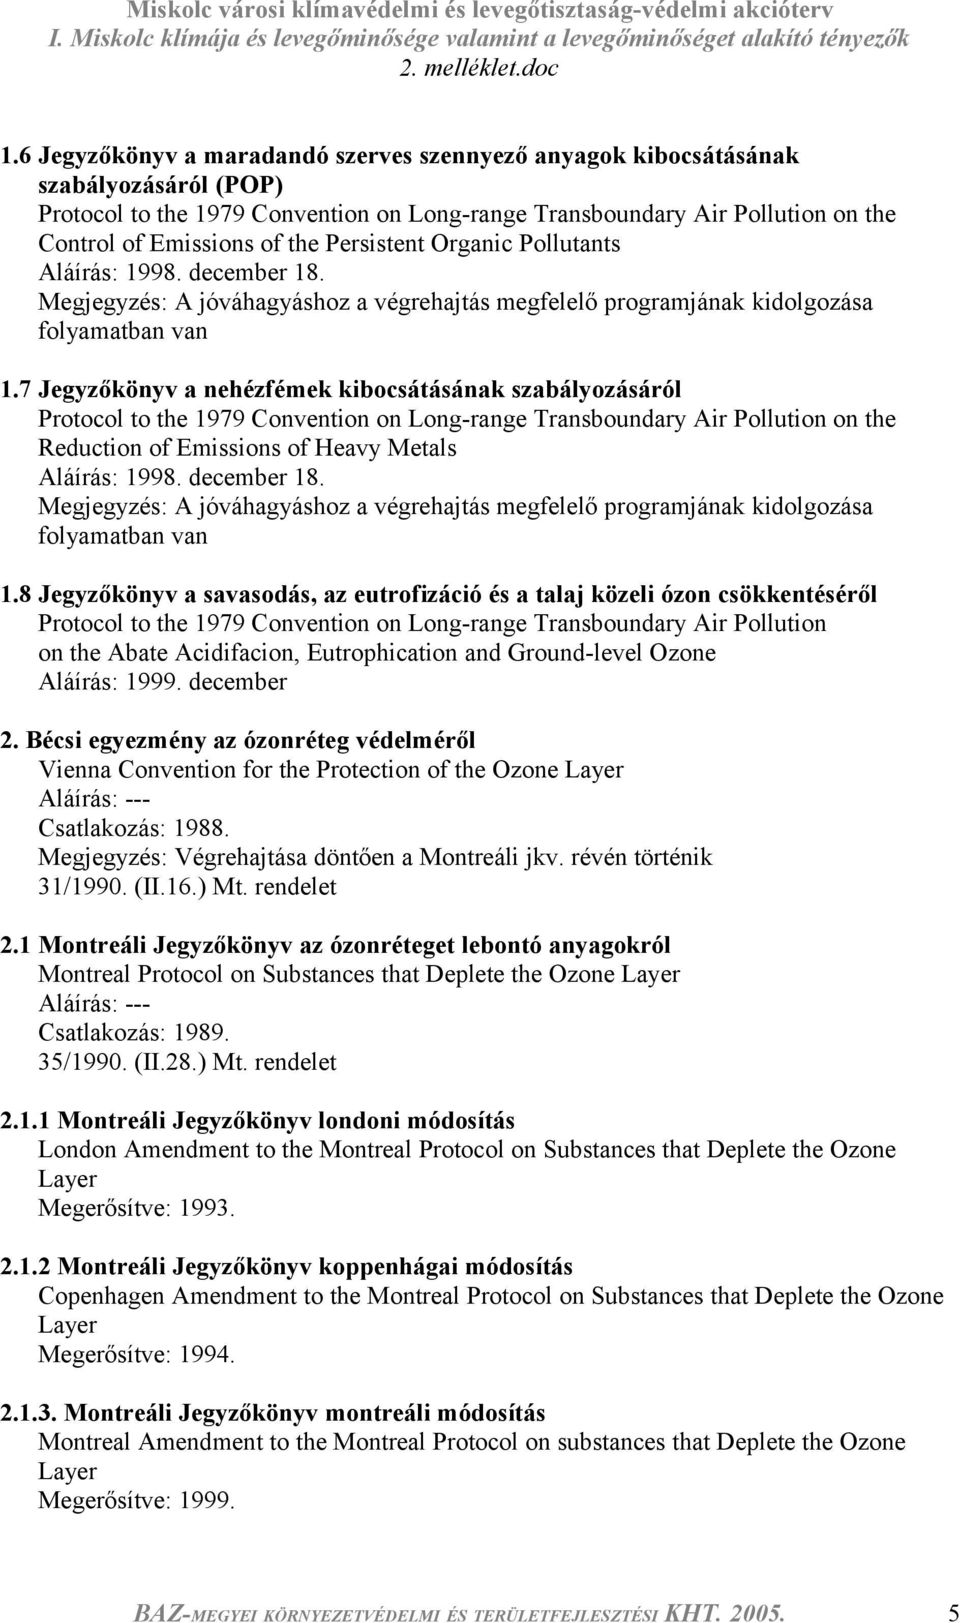 7 Jegyzőkönyv a nehézfémek kibocsátásának szabályozásáról Protocol to the 1979 Convention on Long-range Transboundary Air Pollution on the Reduction of Emissions of Heavy Metals Aláírás: 1998.